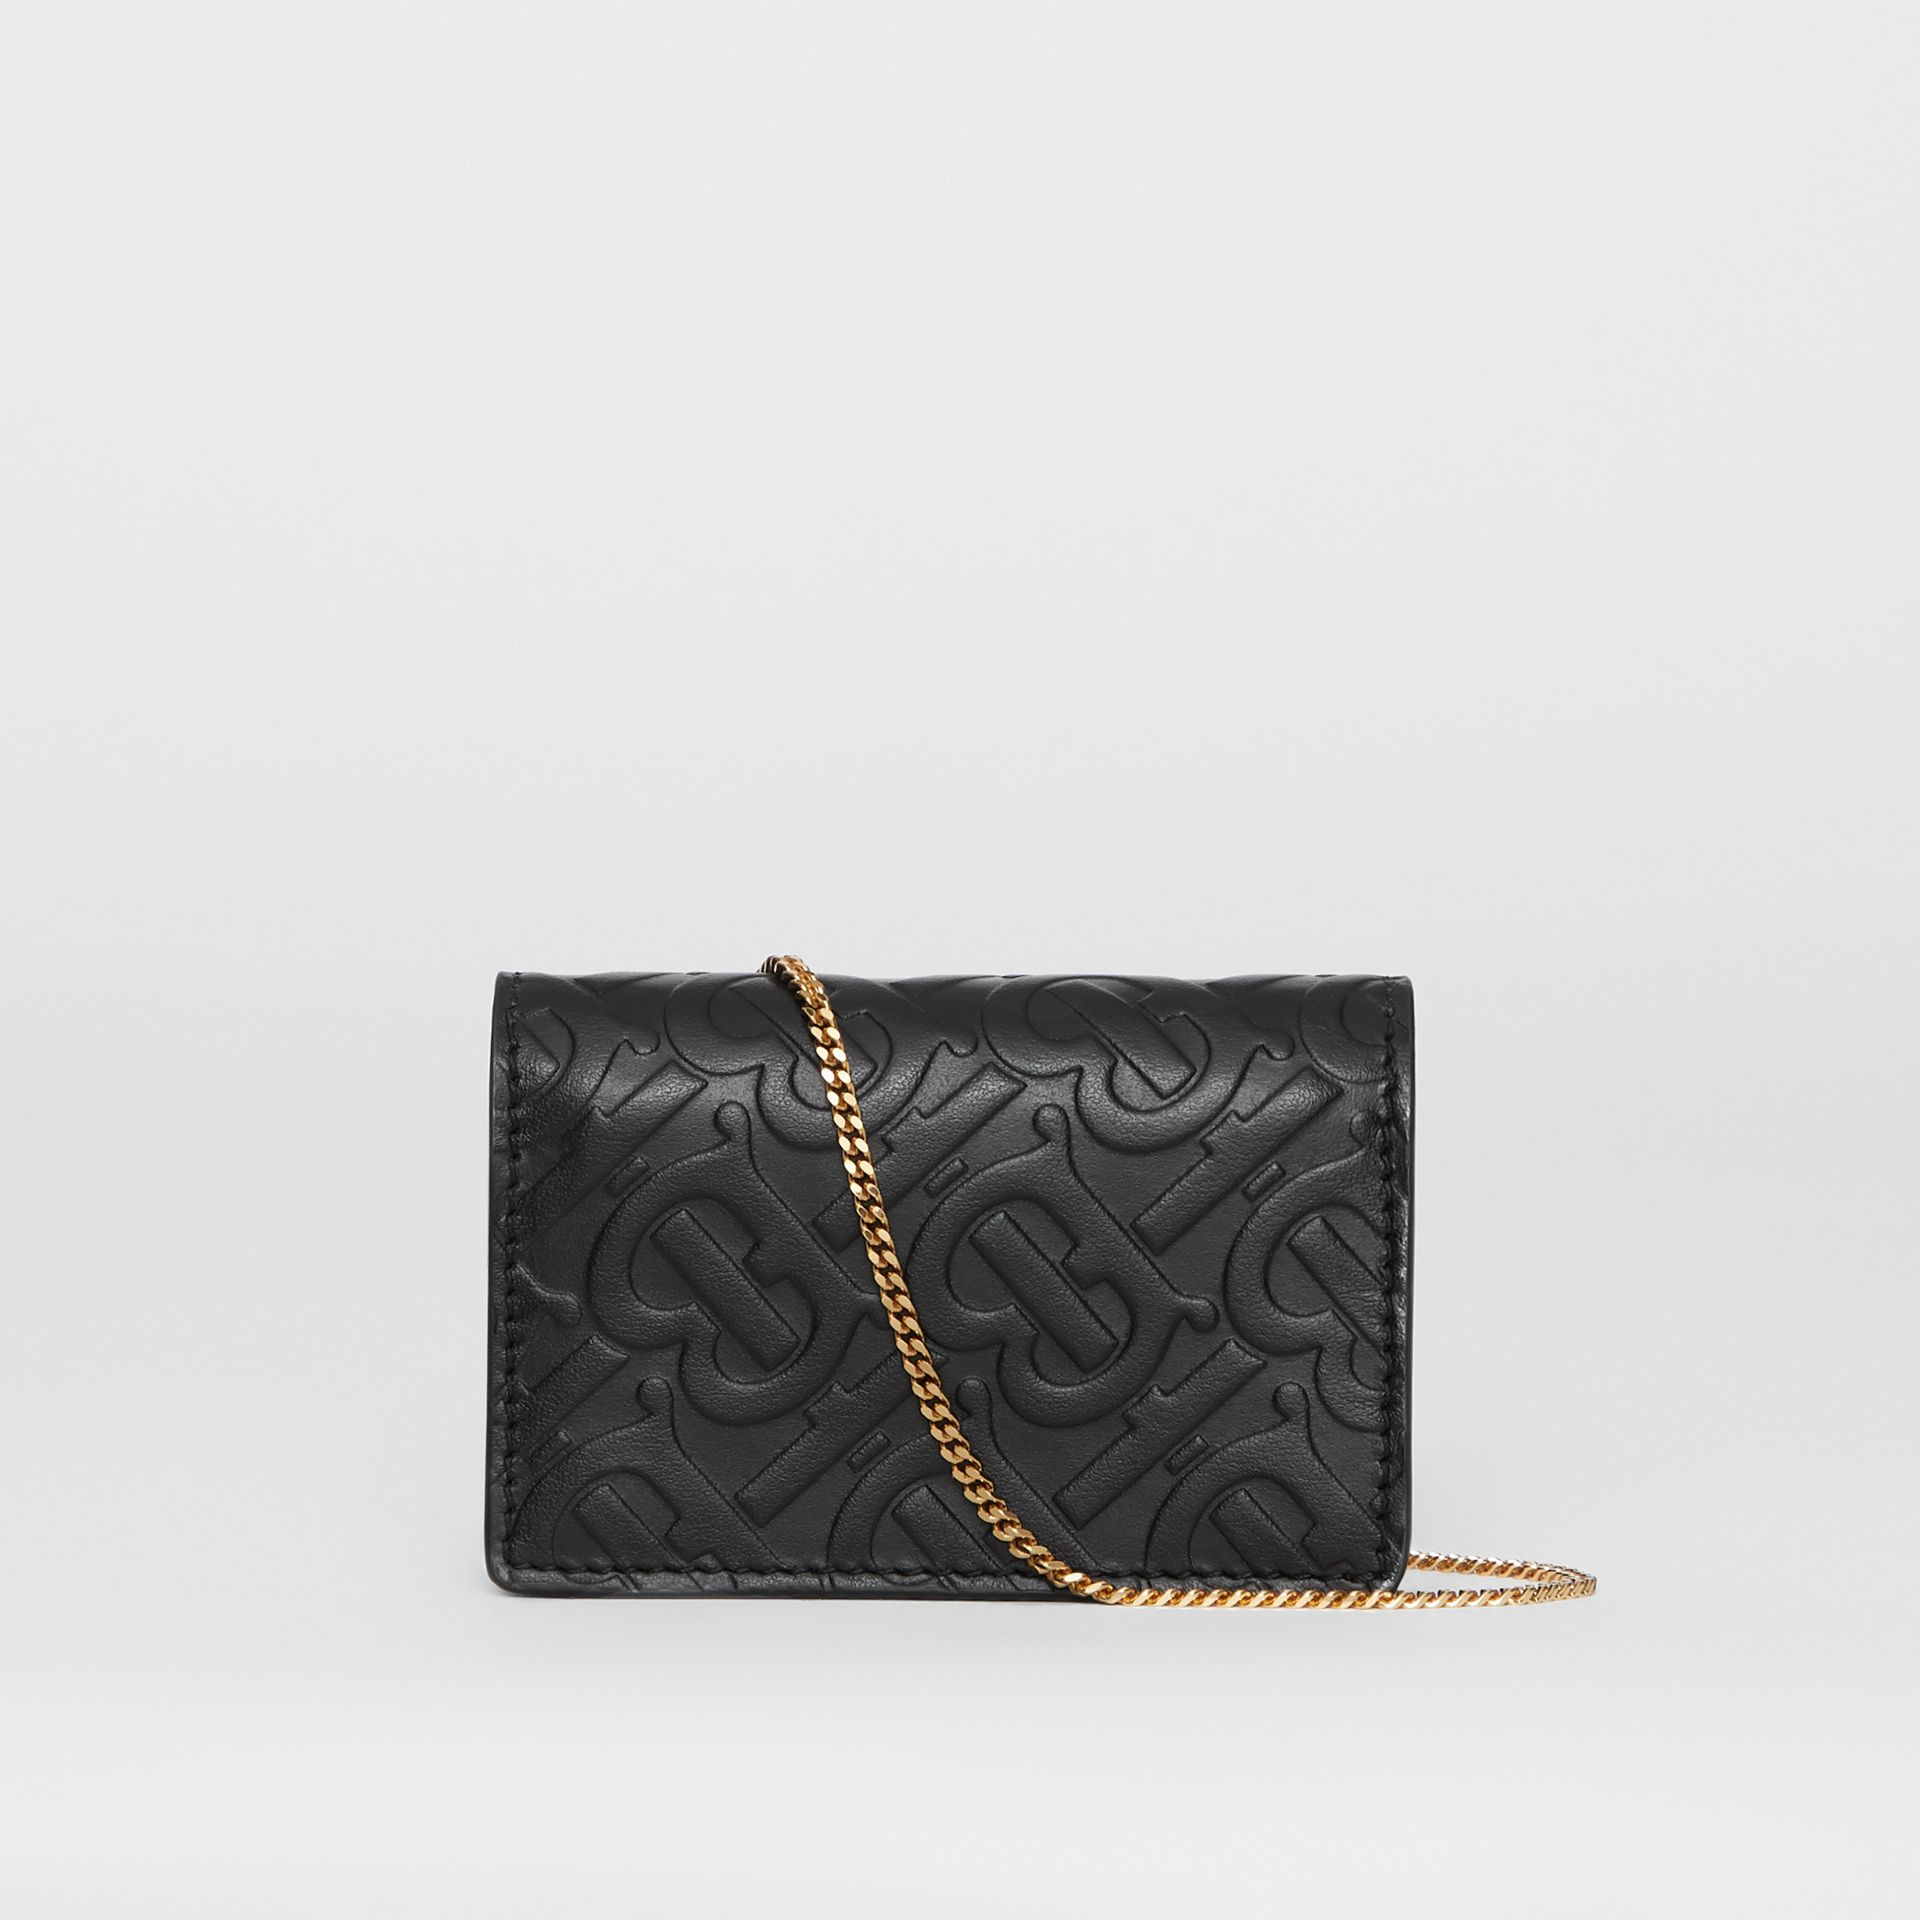 Monogram Leather Card Case with Detachable Strap in Black - Women | Burberry Singapore - gallery image 7